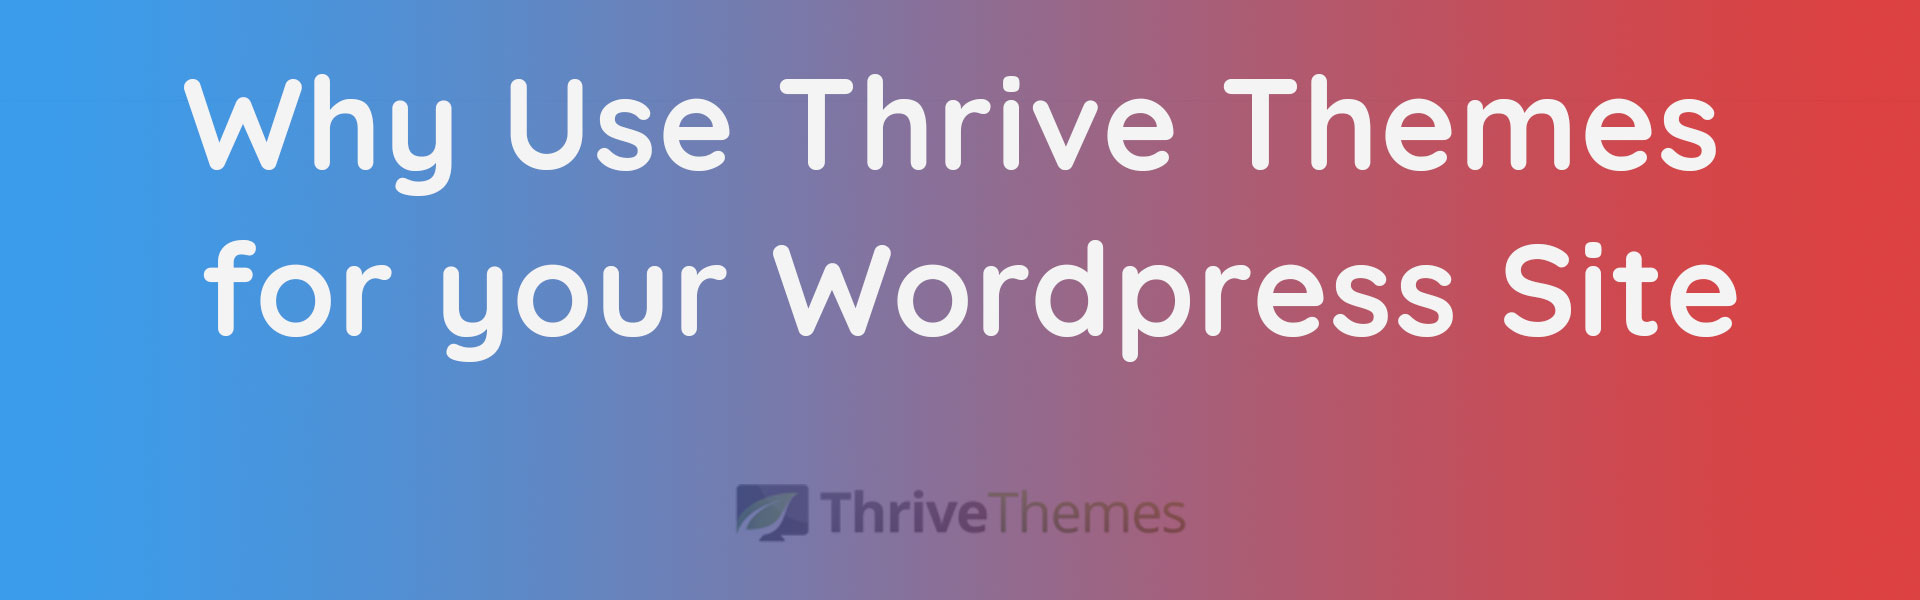 Online Voucher Code For Thrive Themes